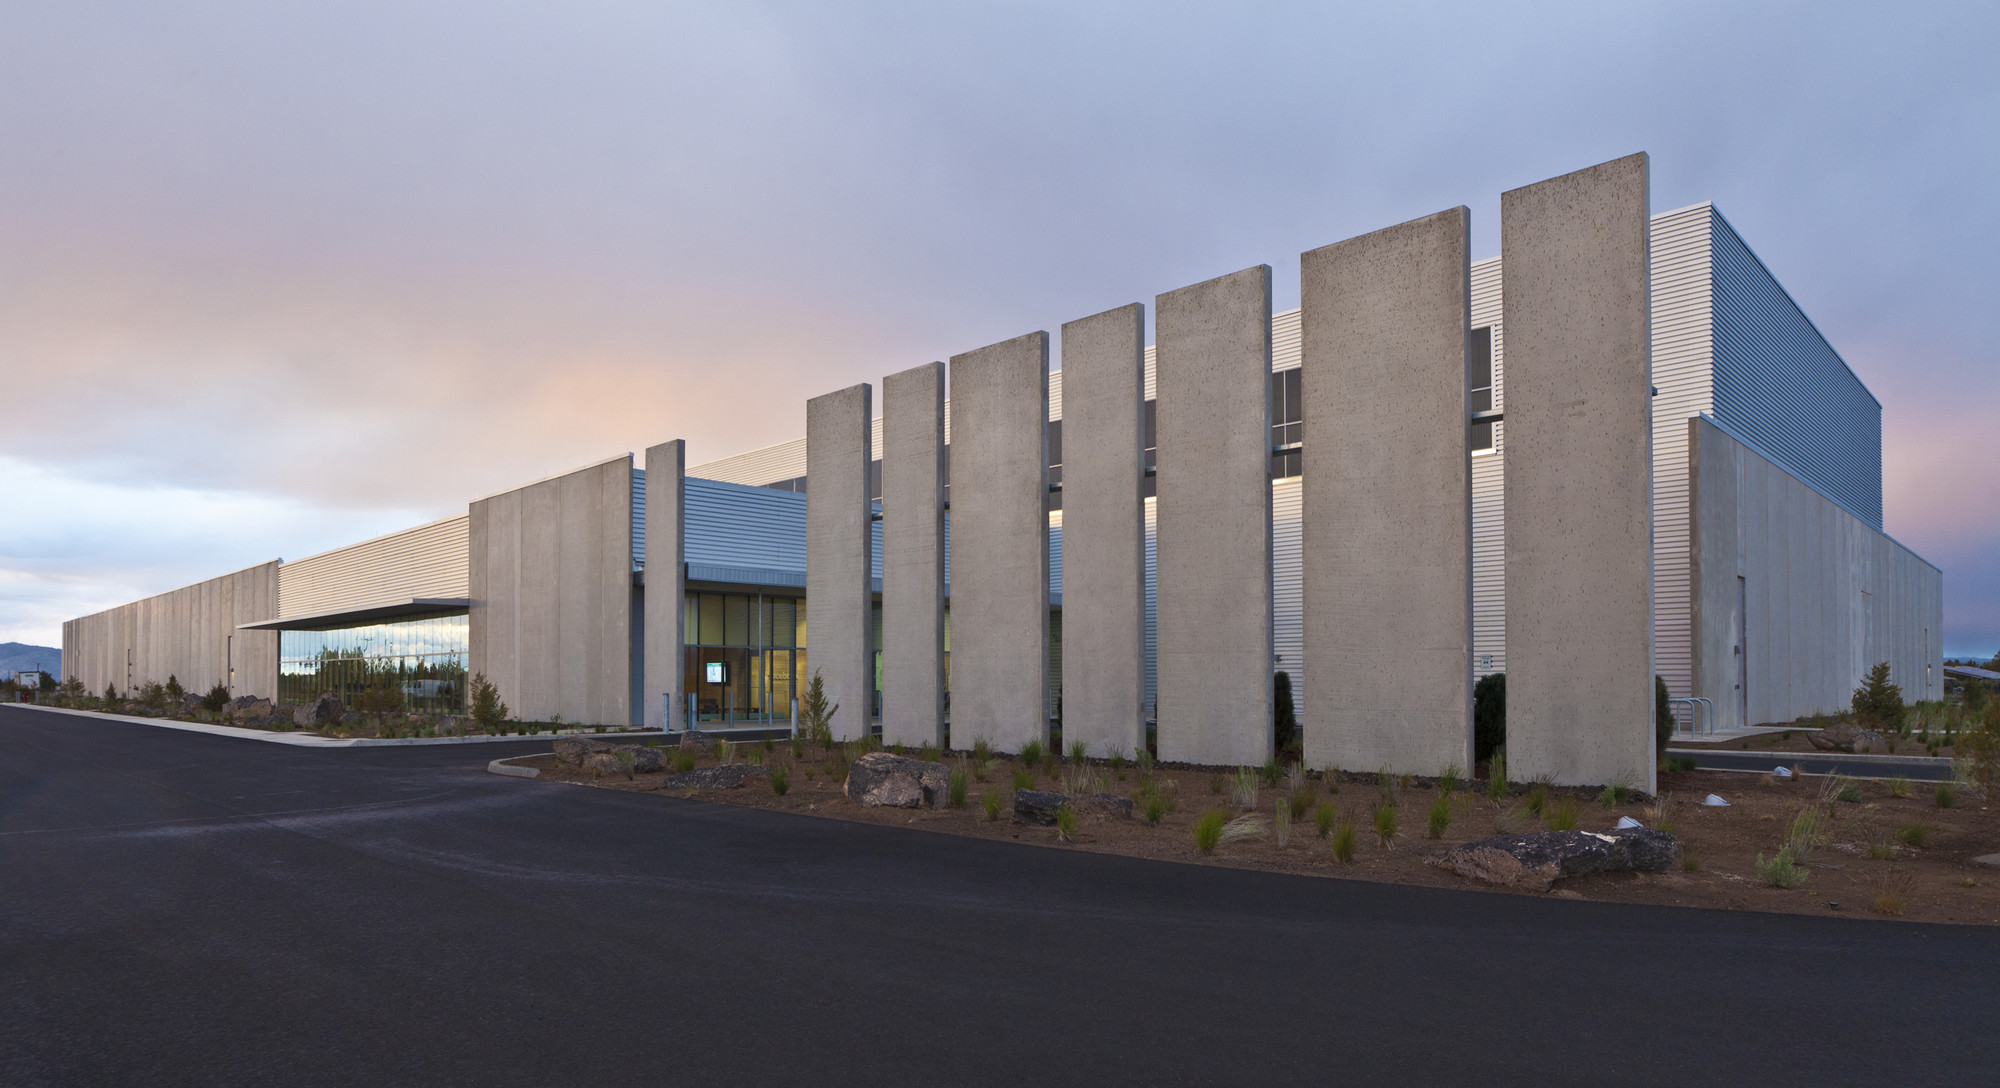 Facebook prineville data center sheehan partners archdaily for O architecture facebook